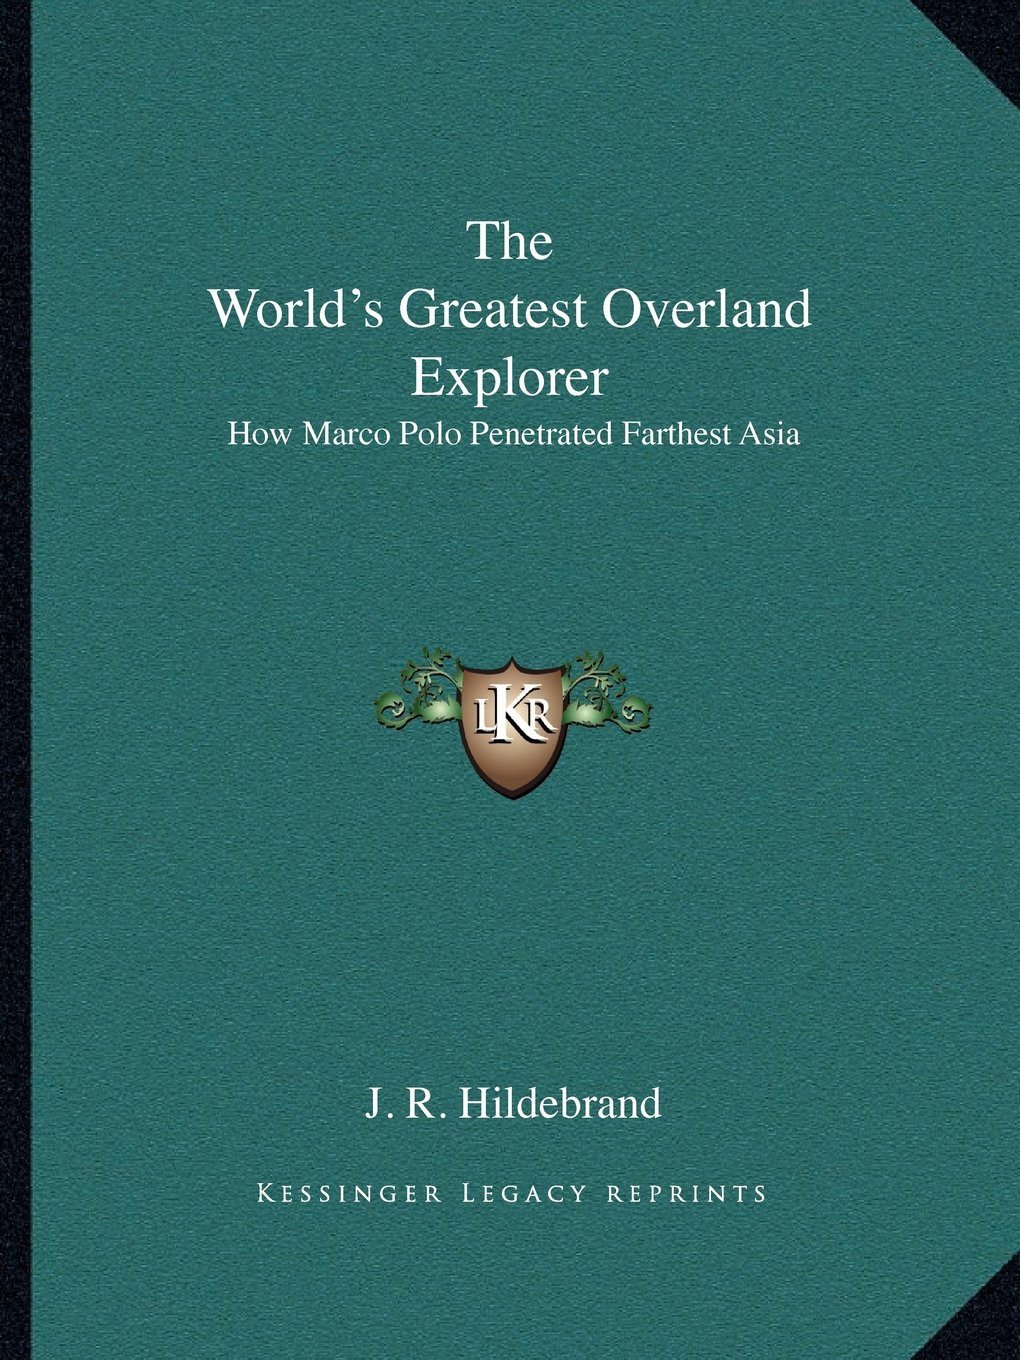 Download The World's Greatest Overland Explorer: How Marco Polo Penetrated Farthest Asia ebook